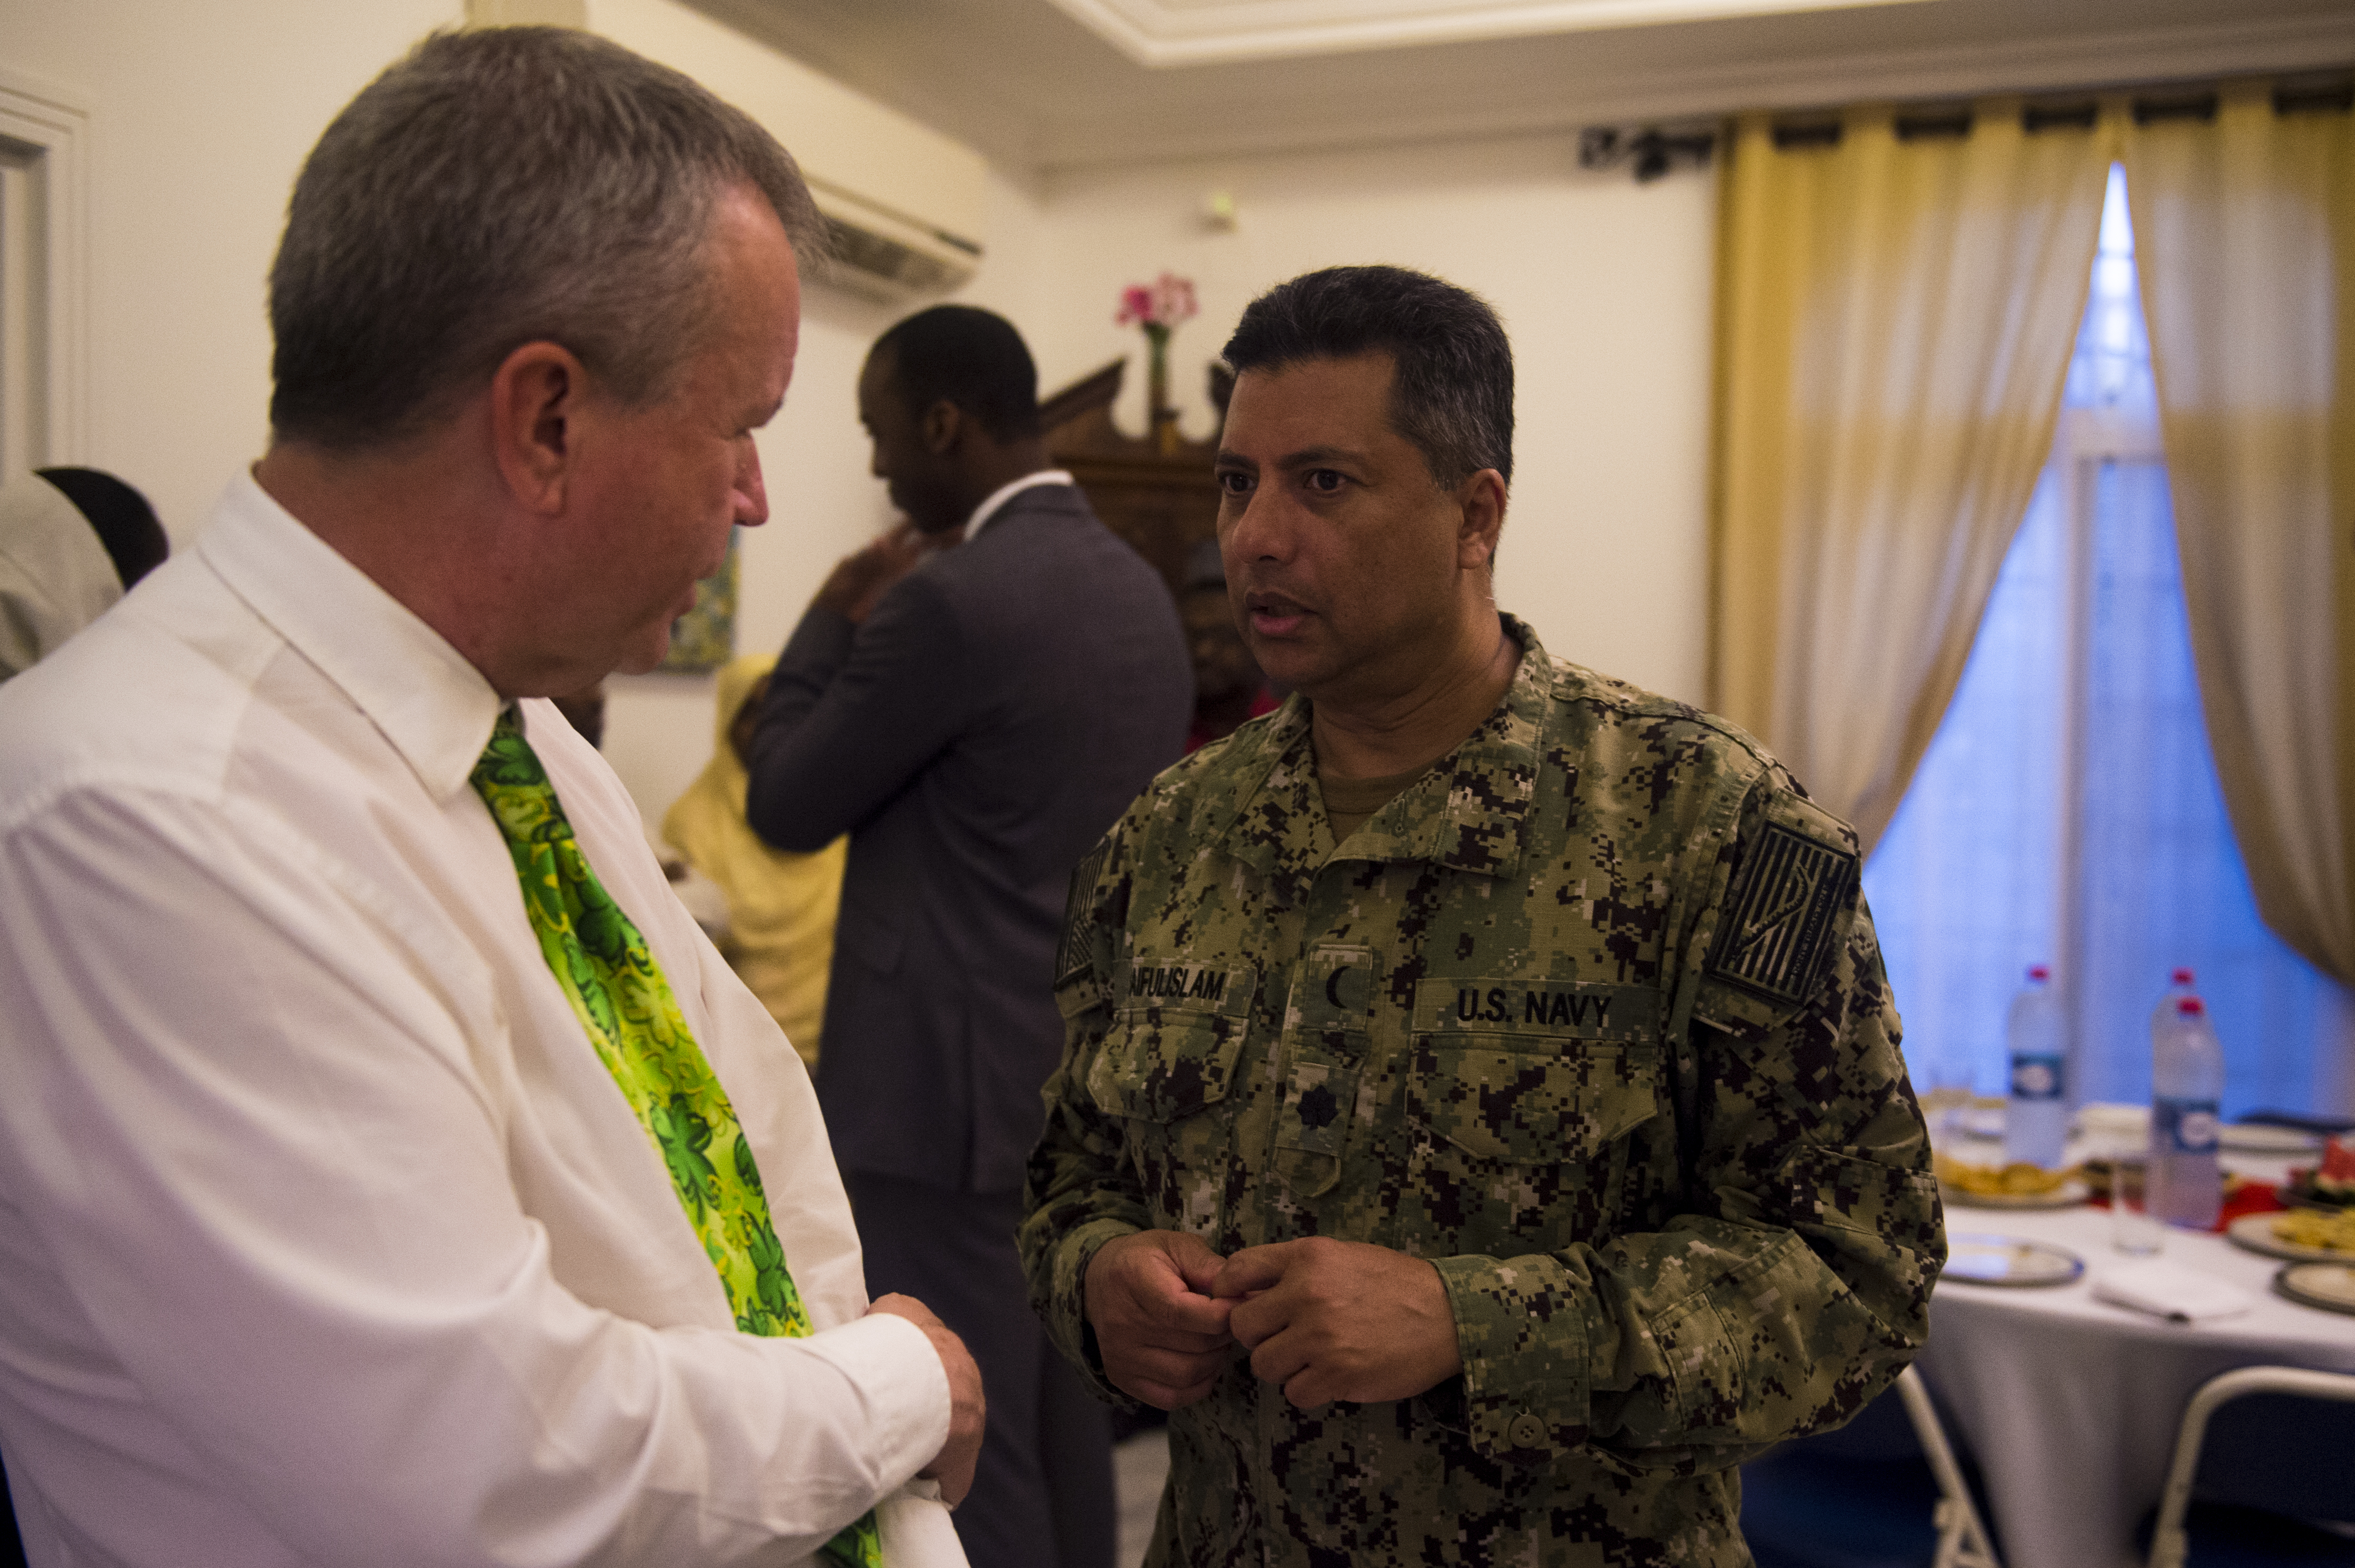 U.S. ambassador to the Republic of Djibouti Ambassador, Larry André, talks with U.S. Navy Cmdr. Abduhena Saifulislam, chaplain, Africa Command, during an Iftar celebration at André's home, Djibouti, May 22, 2018. André opened his home to celebrate two Iftars, one run by the Defense Attaché Office for senior Diboutian Military and security leaders, the second for senior government, diplomatic, and business leaders. (U.S. Air Force photo by Senior Airman Scott Jackson)